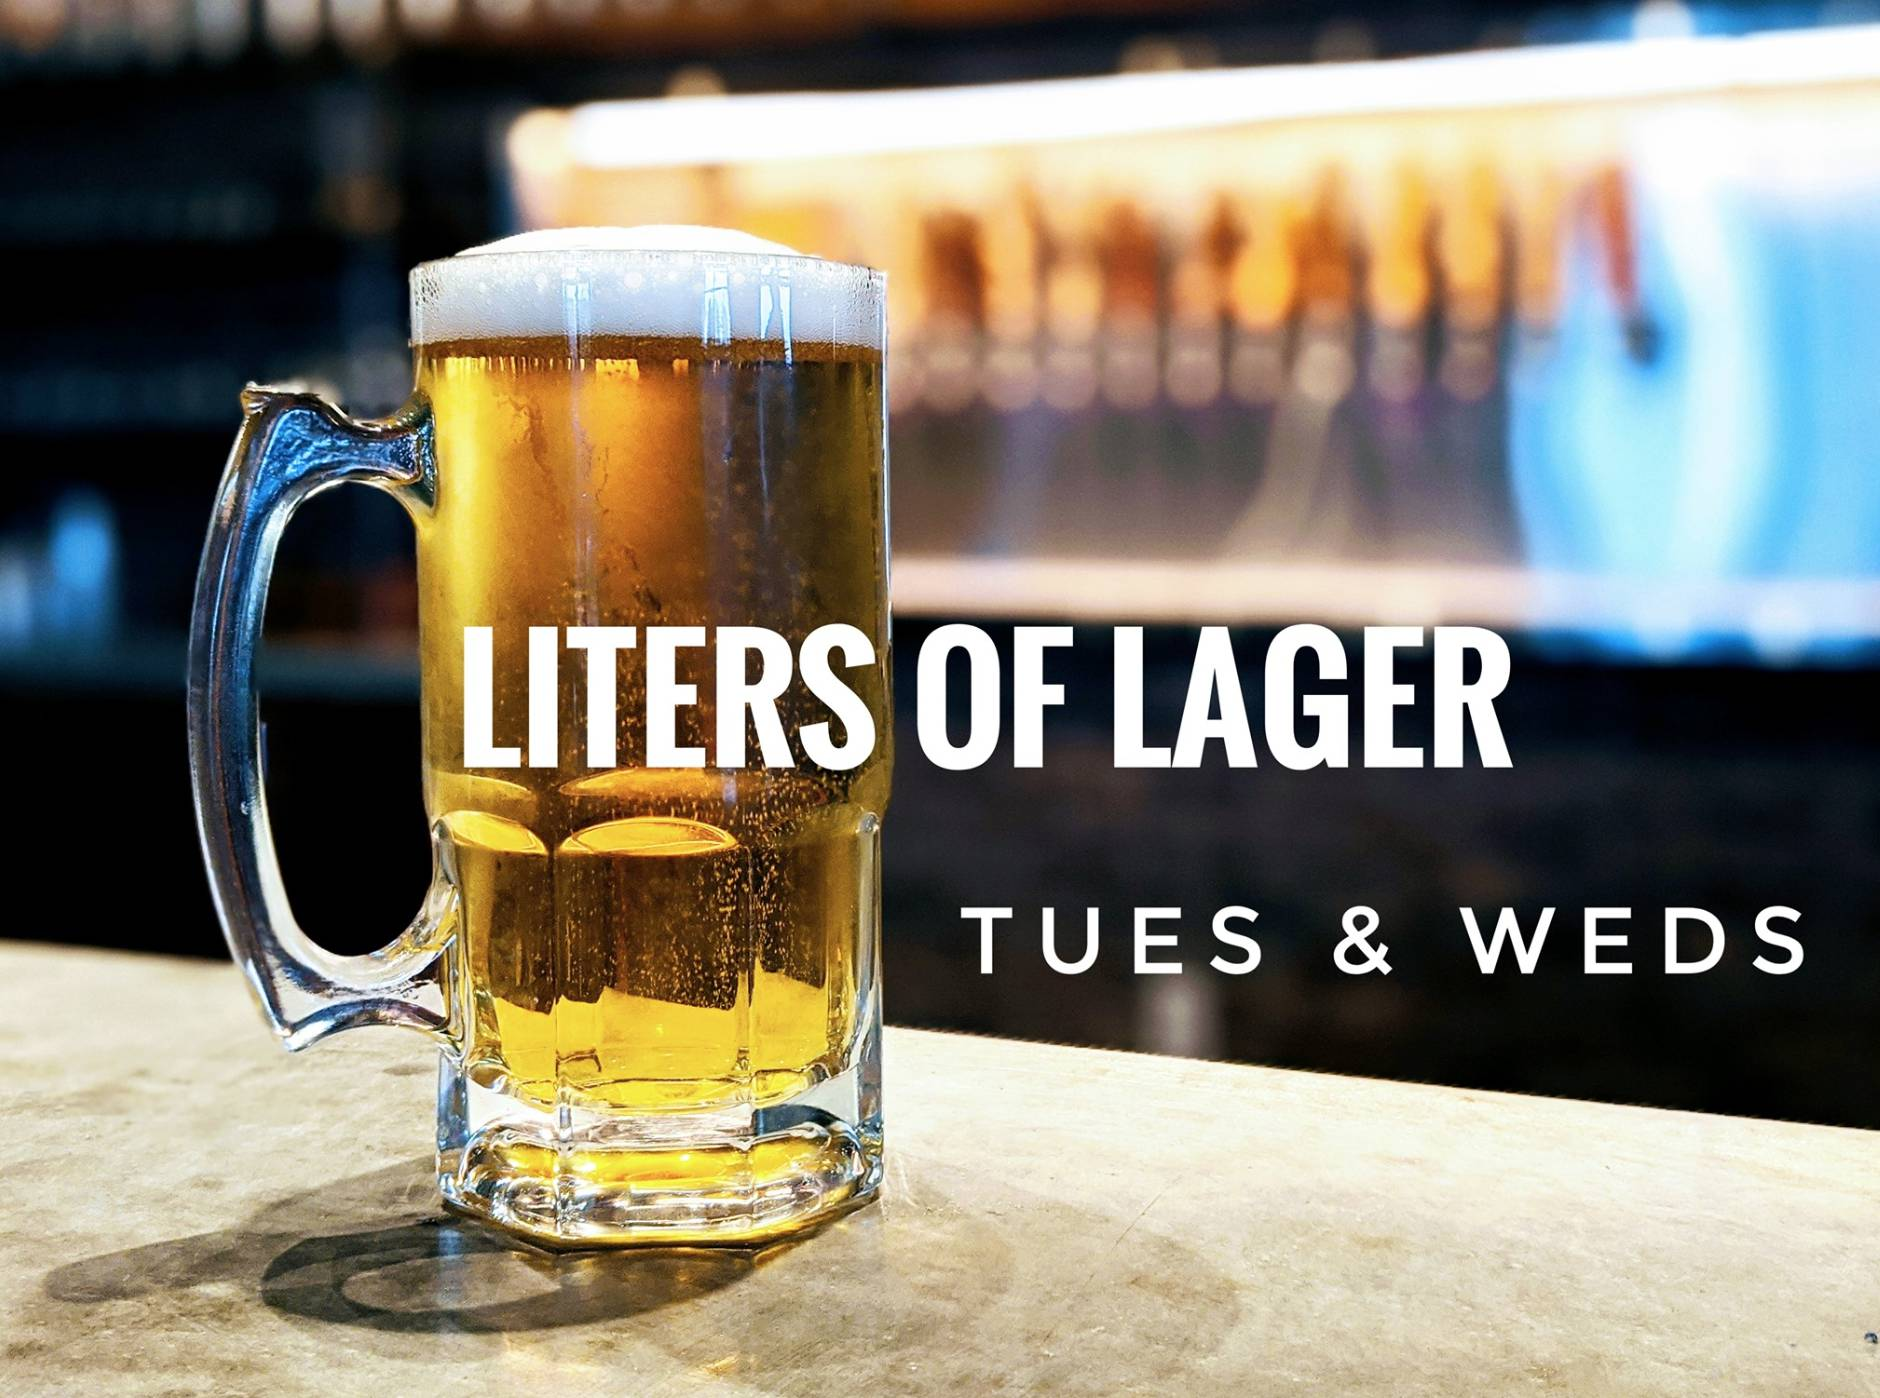 Liters of Lager & Happy Hour (4-6)